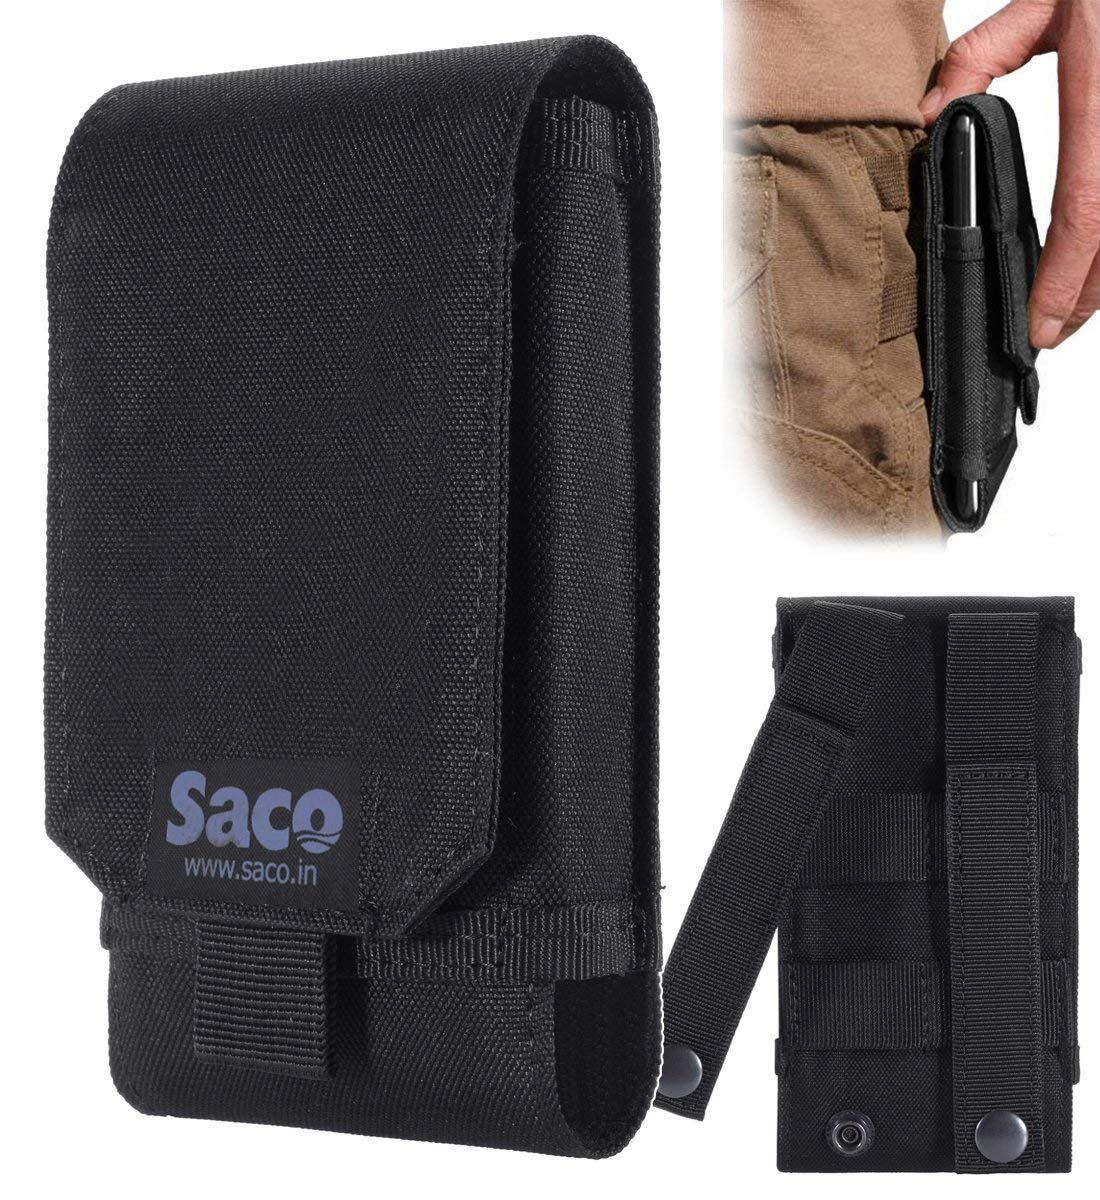 Saco Belt Waist Packs Pouch Holster Cover Case for Mobile Phone (Size L) Sports Fitness & Outdoors Running Jogging product image